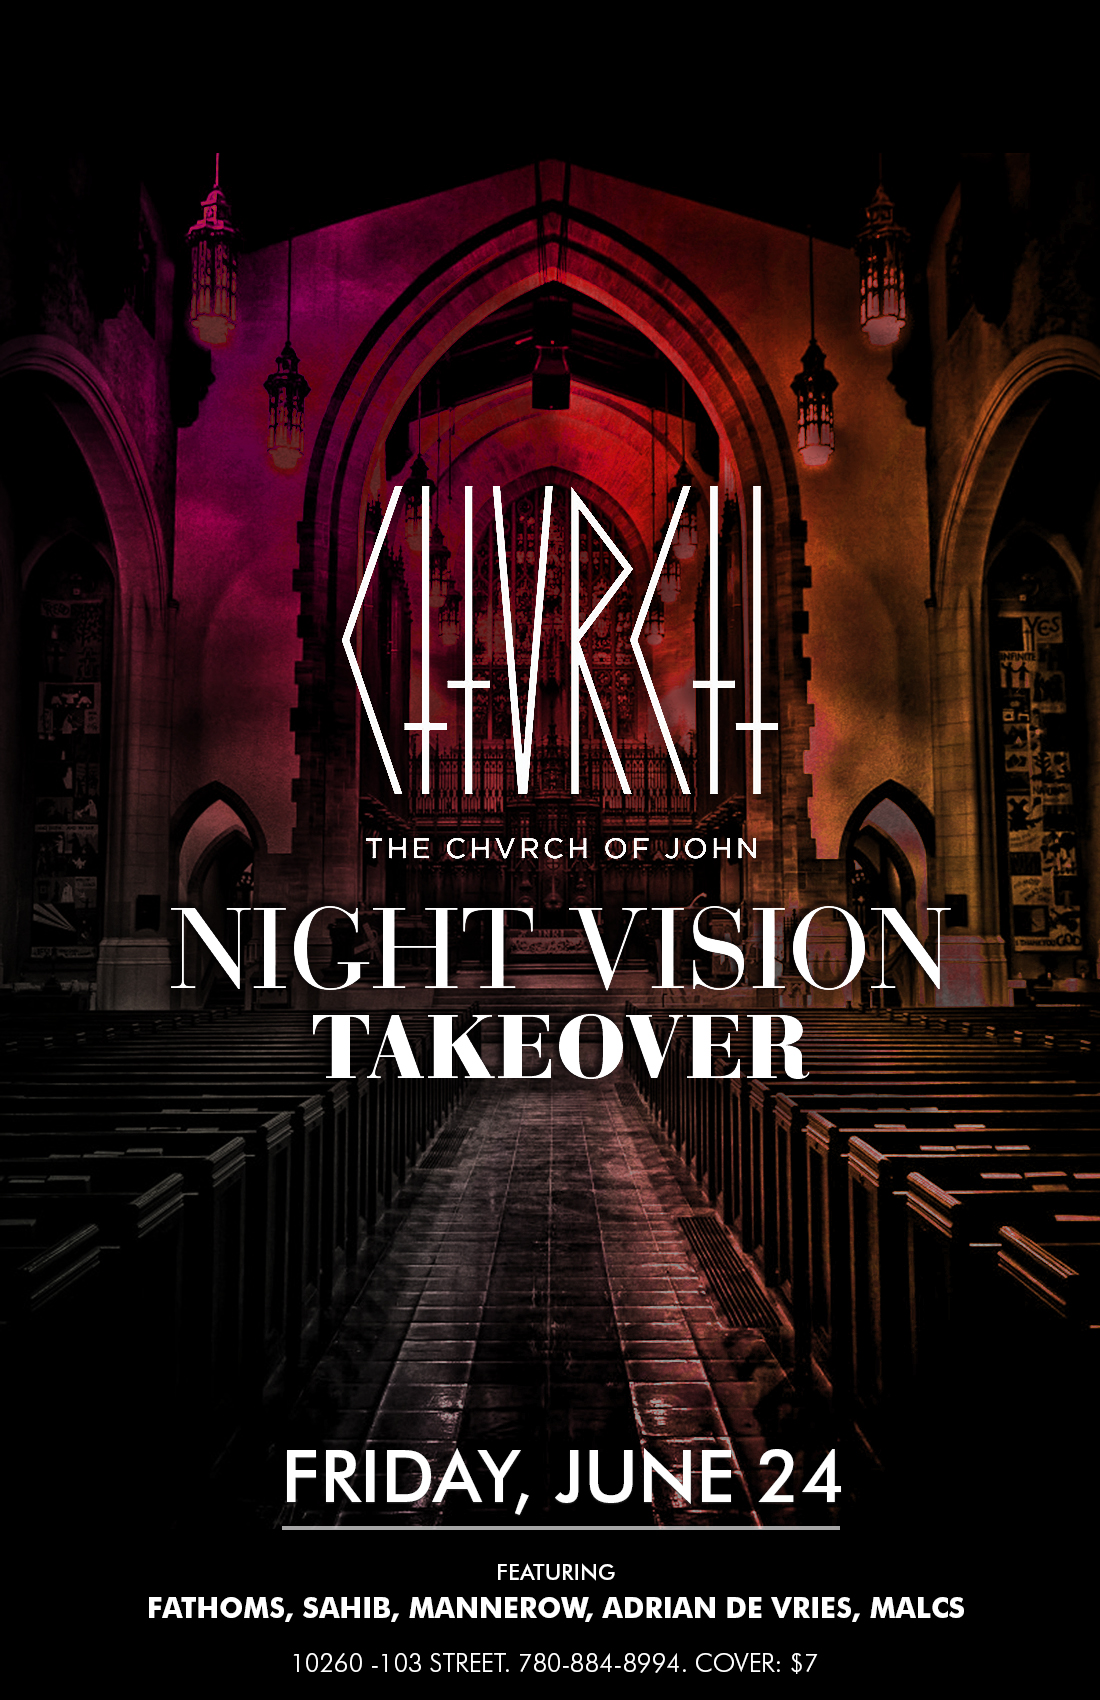 Chvrch of John and Night Vision in downtown Edmonton